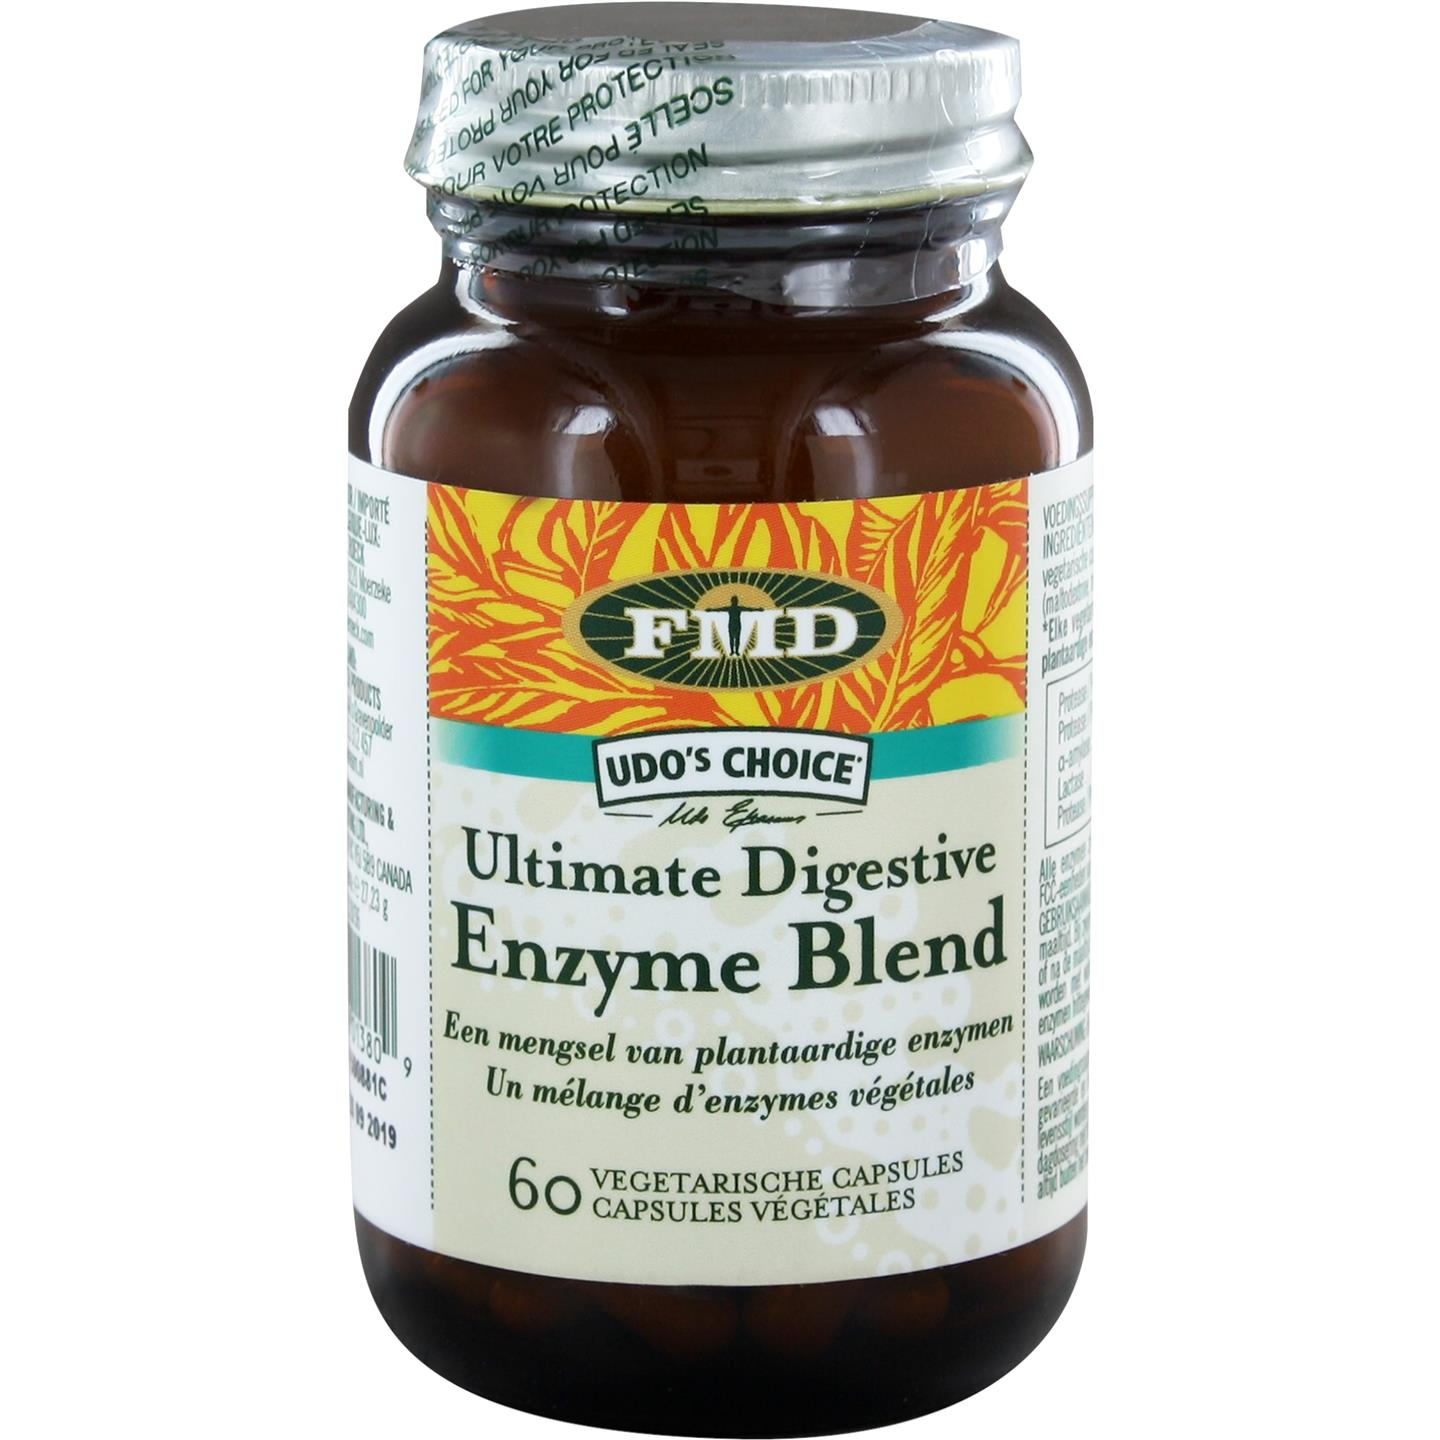 Ultimate Digestive Enzyme Blend